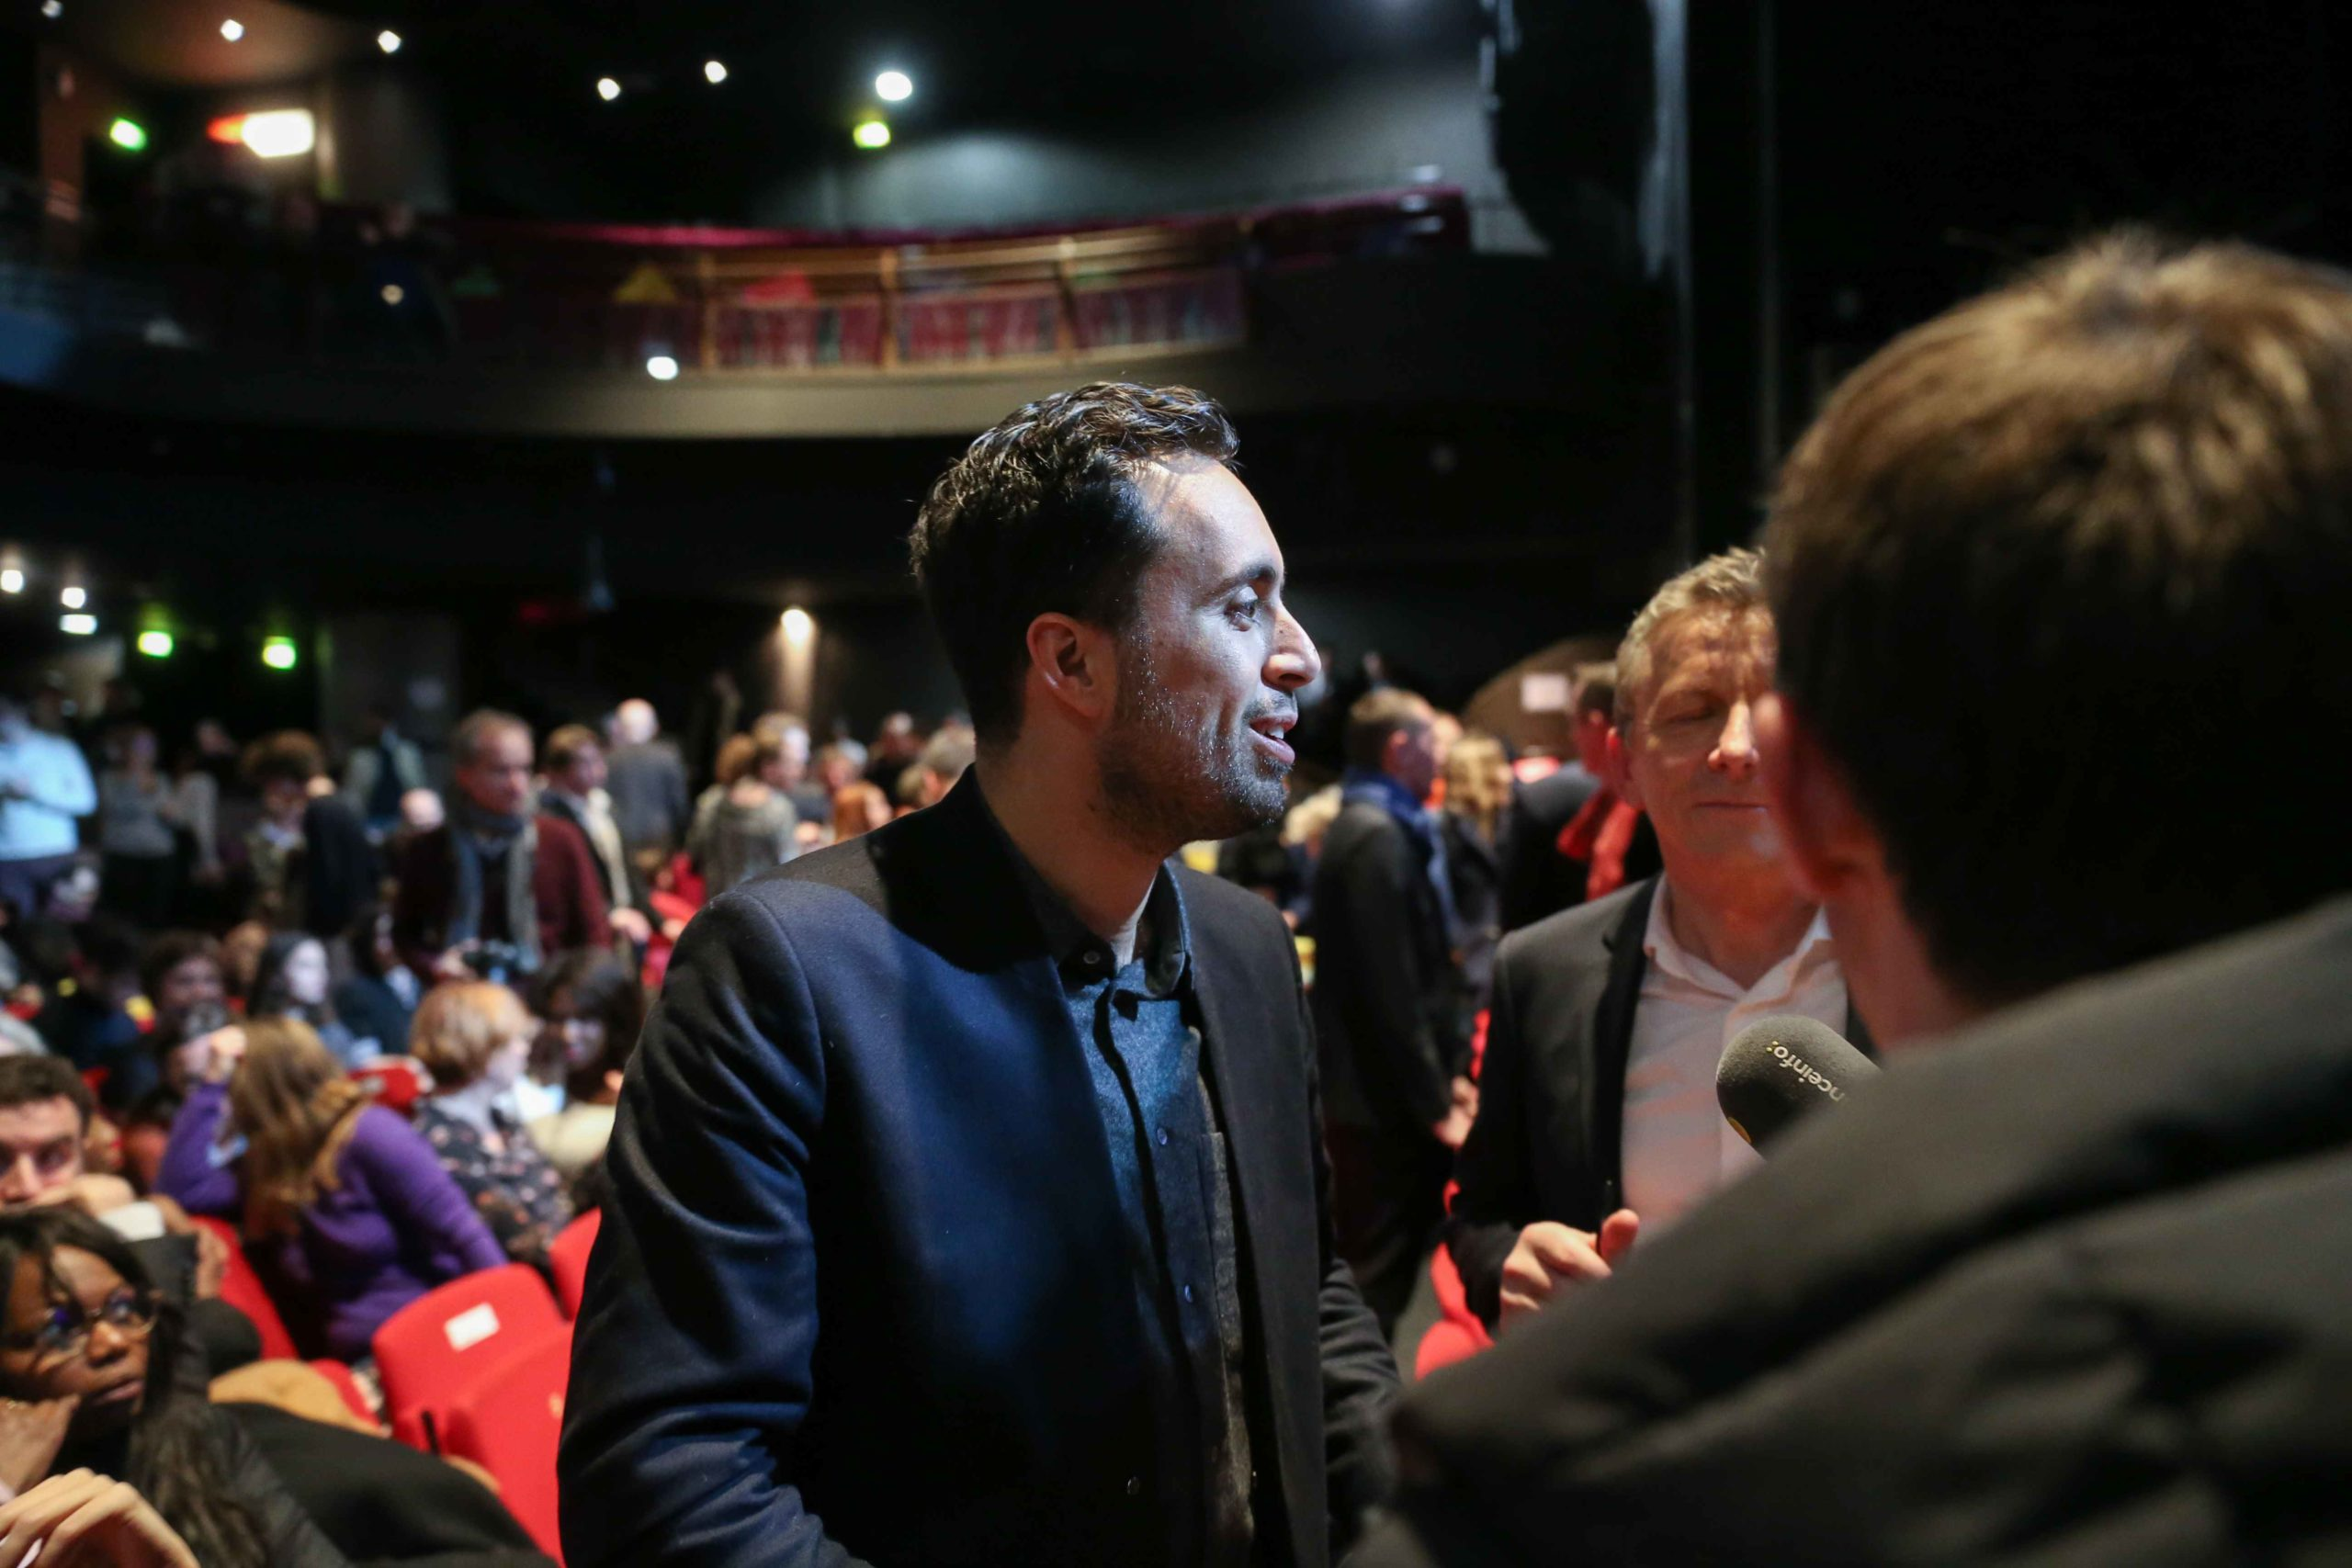 France's leftist party La France Insoumise (LFI) MP Mounir Mahjoubi (C) takes part in the Benjamin Griveaux meeting, at the Bobino theater in Paris, on January 27, 2020. Benjamin Griveaux is the official La Republique en Marche (LREM) candidate for the Par